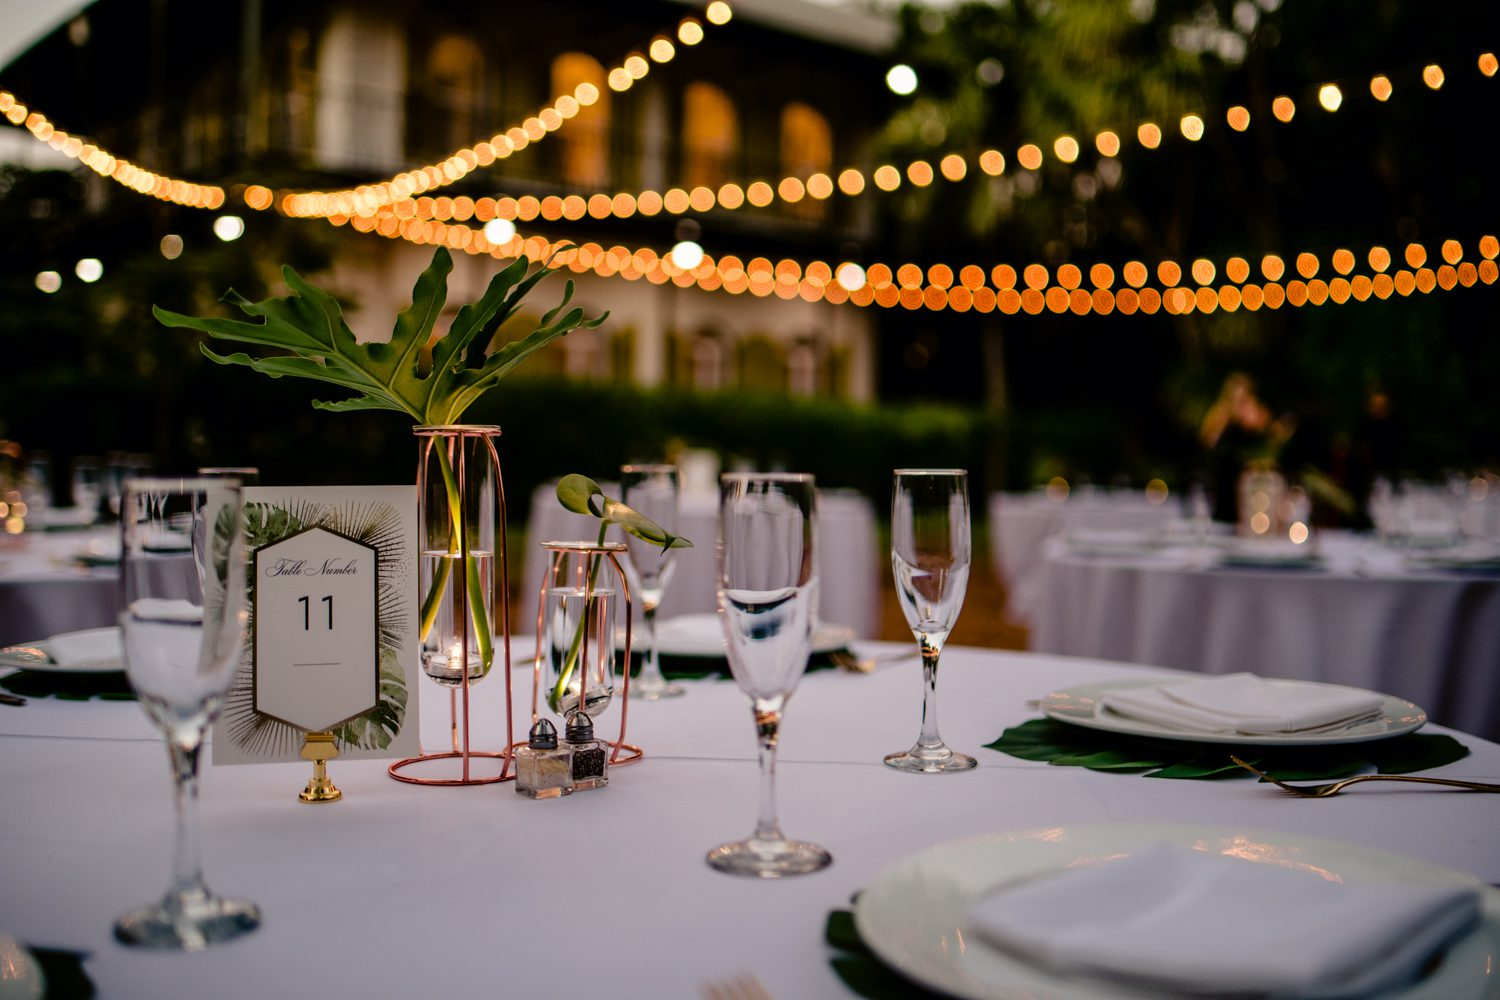 Table setting for a wedding reception at hemingway house